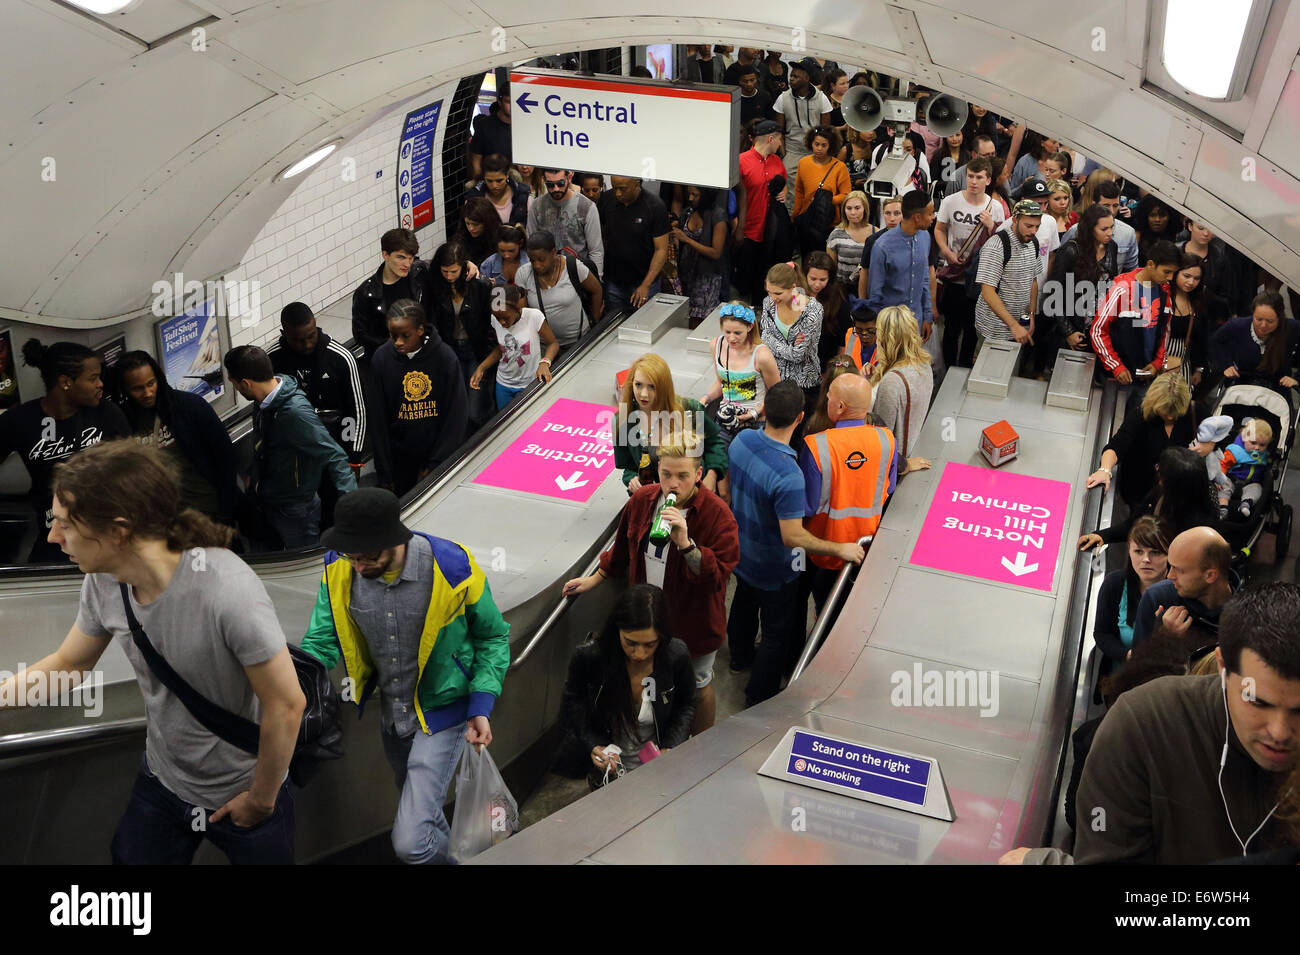 Les heures de pointe, le métro de Londres, UK Photo : Pixstory / alamy Photo Stock